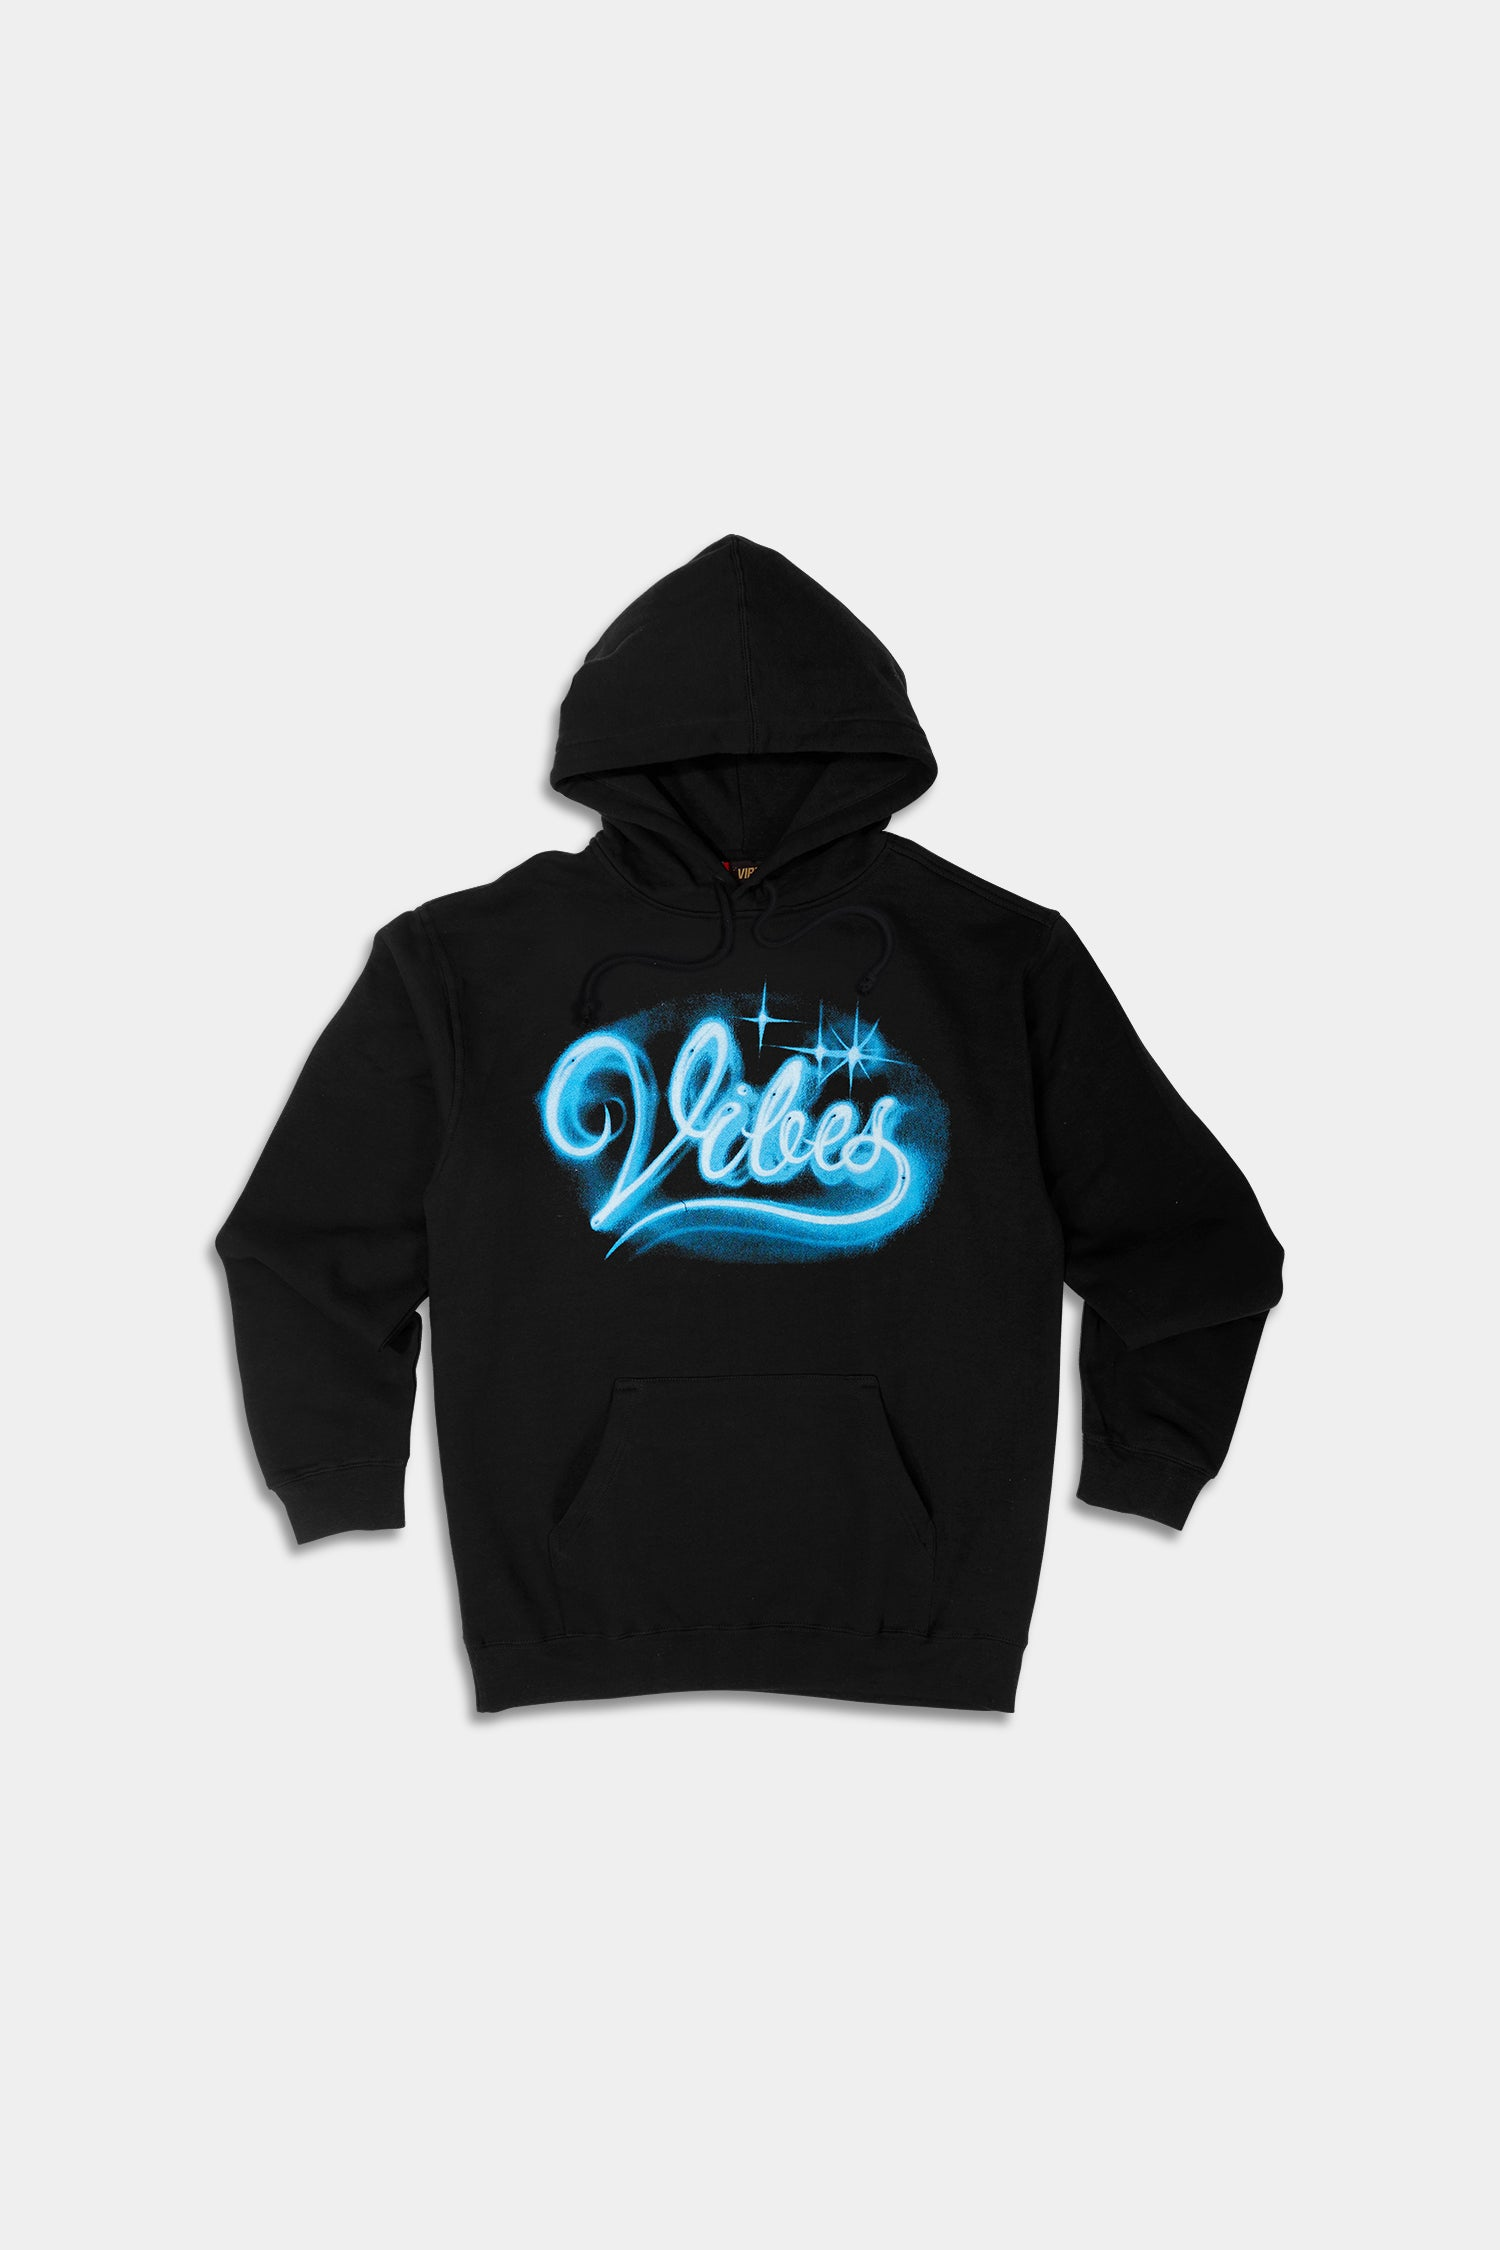 VIBES Air Up There Hoodie